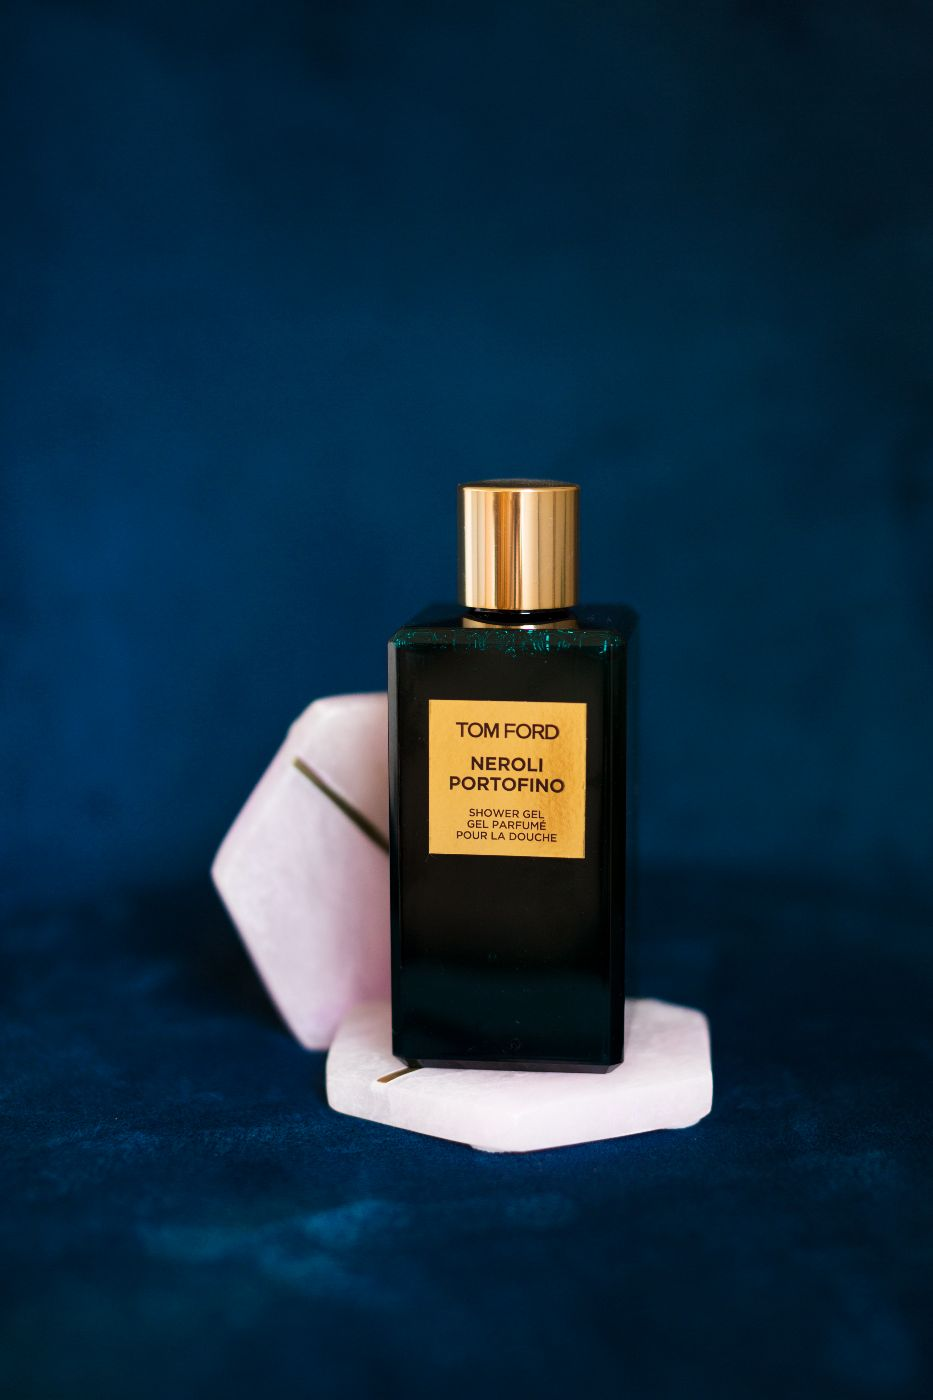 theannaedit-beauty-and-products-that-smell-good-summer-tom-ford-diptique-too-faced-august-2017-2